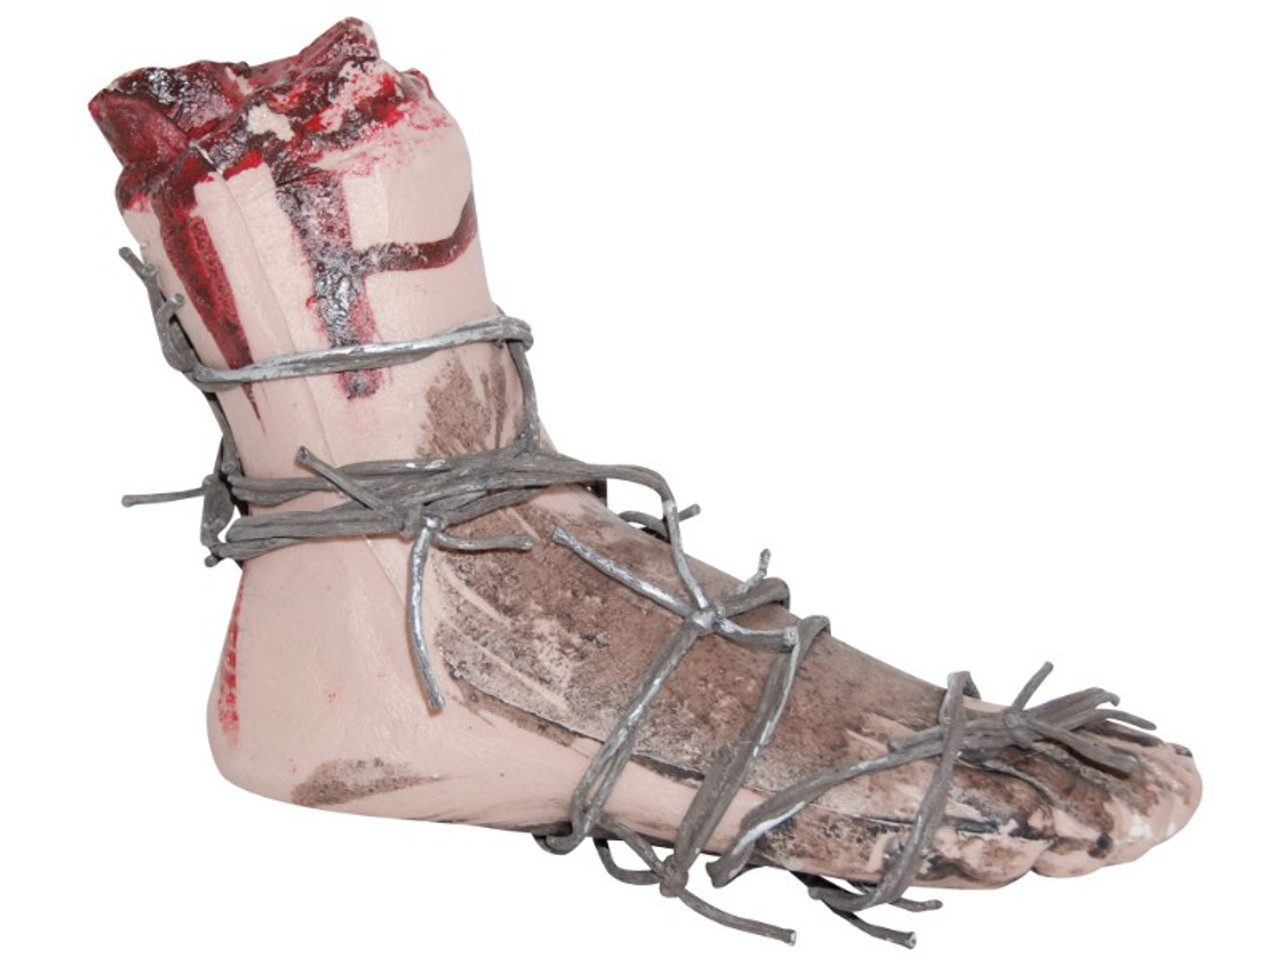 Bloody Barbed Wire Foot Severed Body Part | Houseofhauntz.com